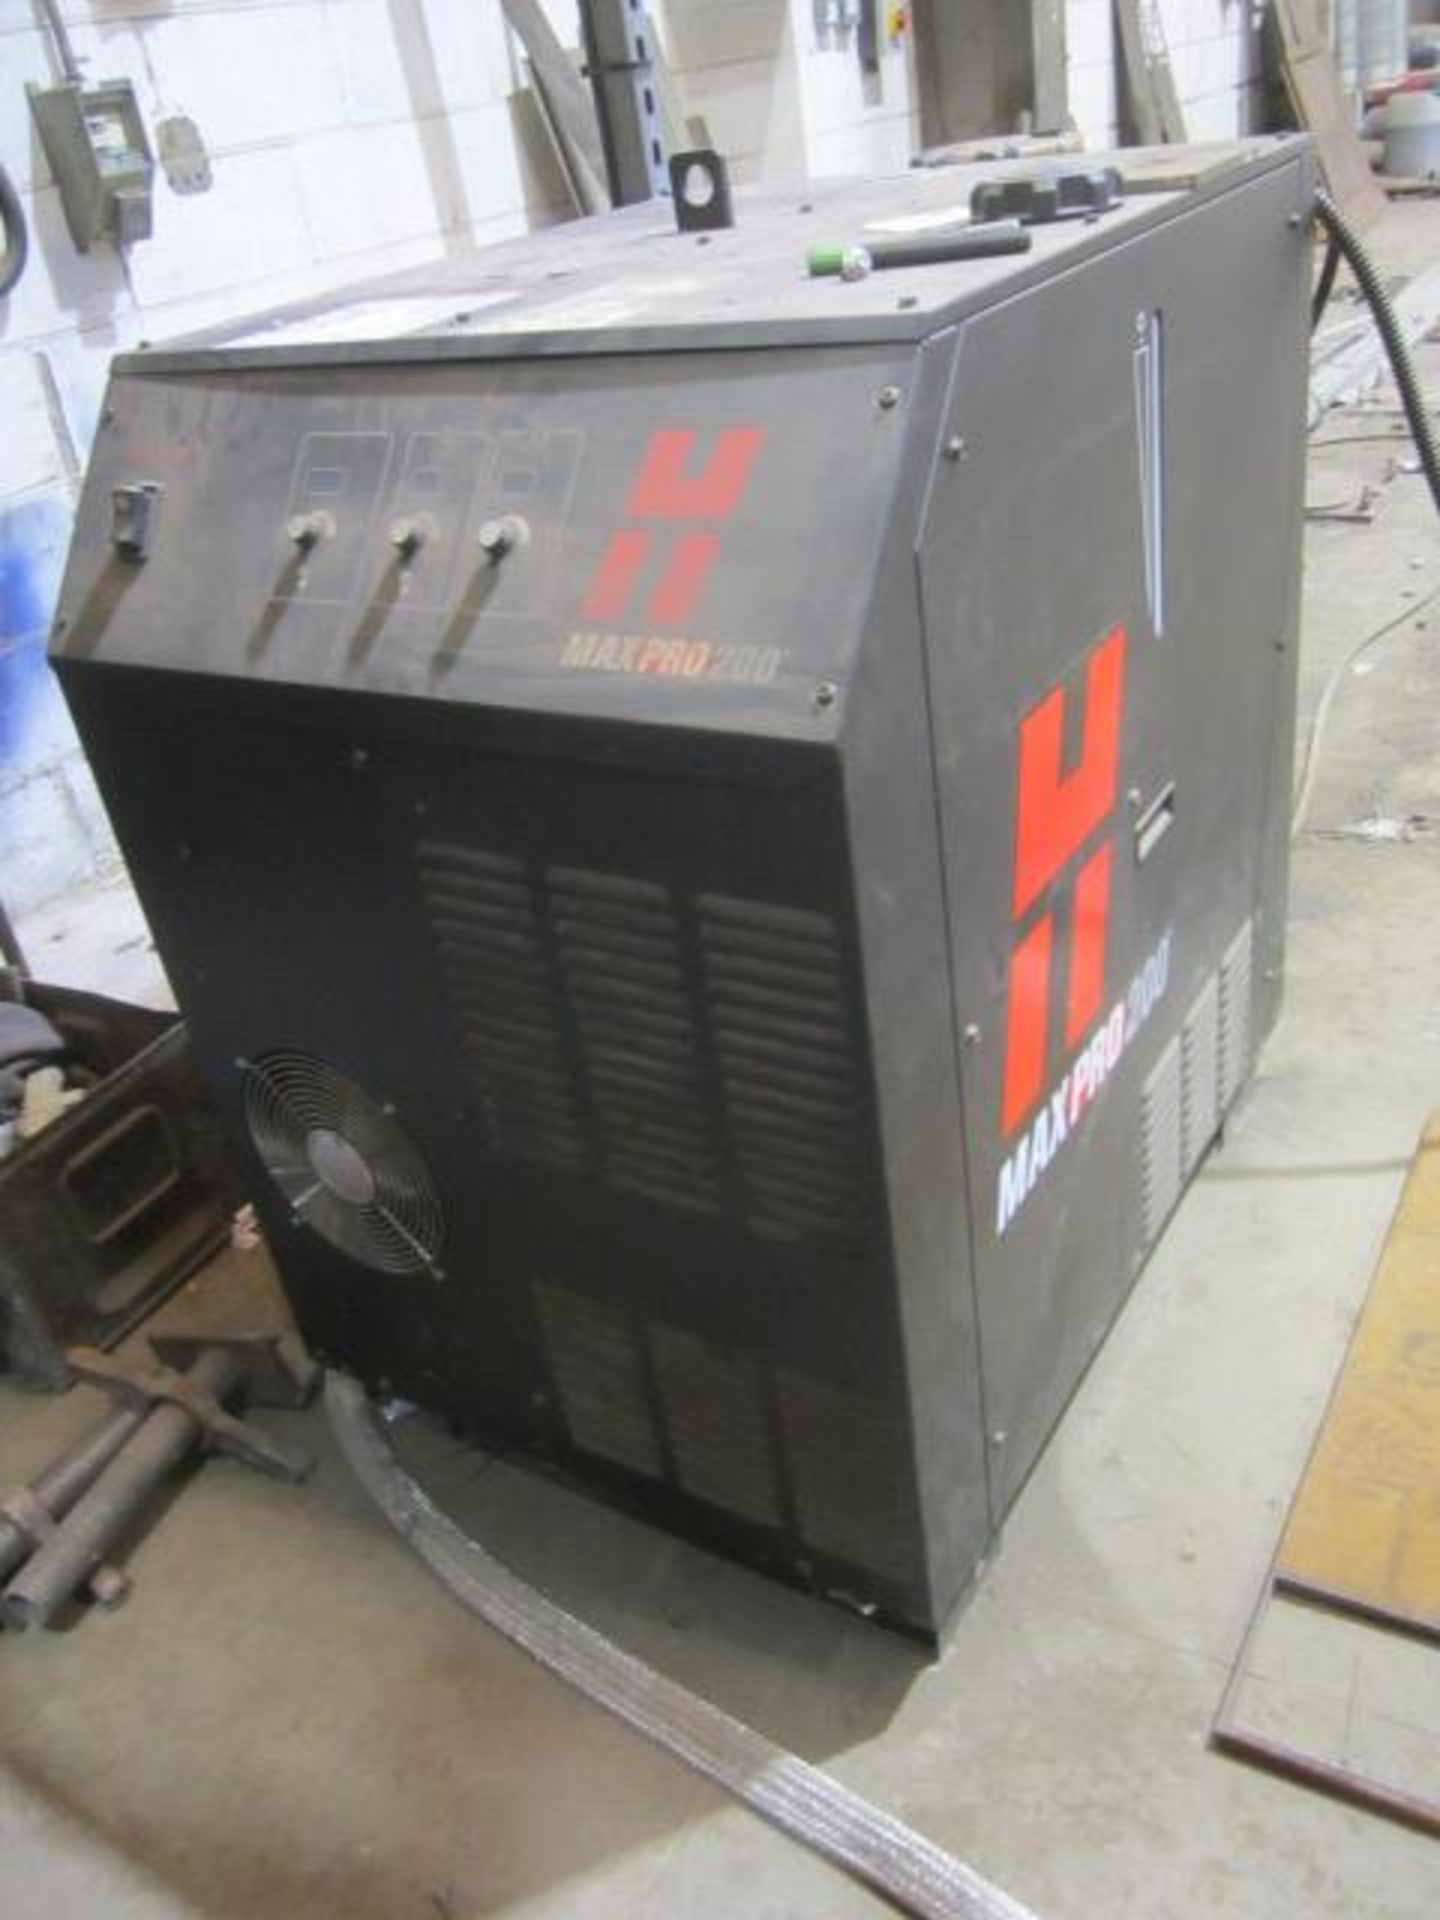 Hypertherm Max Pro plasma power source (power source only), serial no. MP200005889. A work Method...